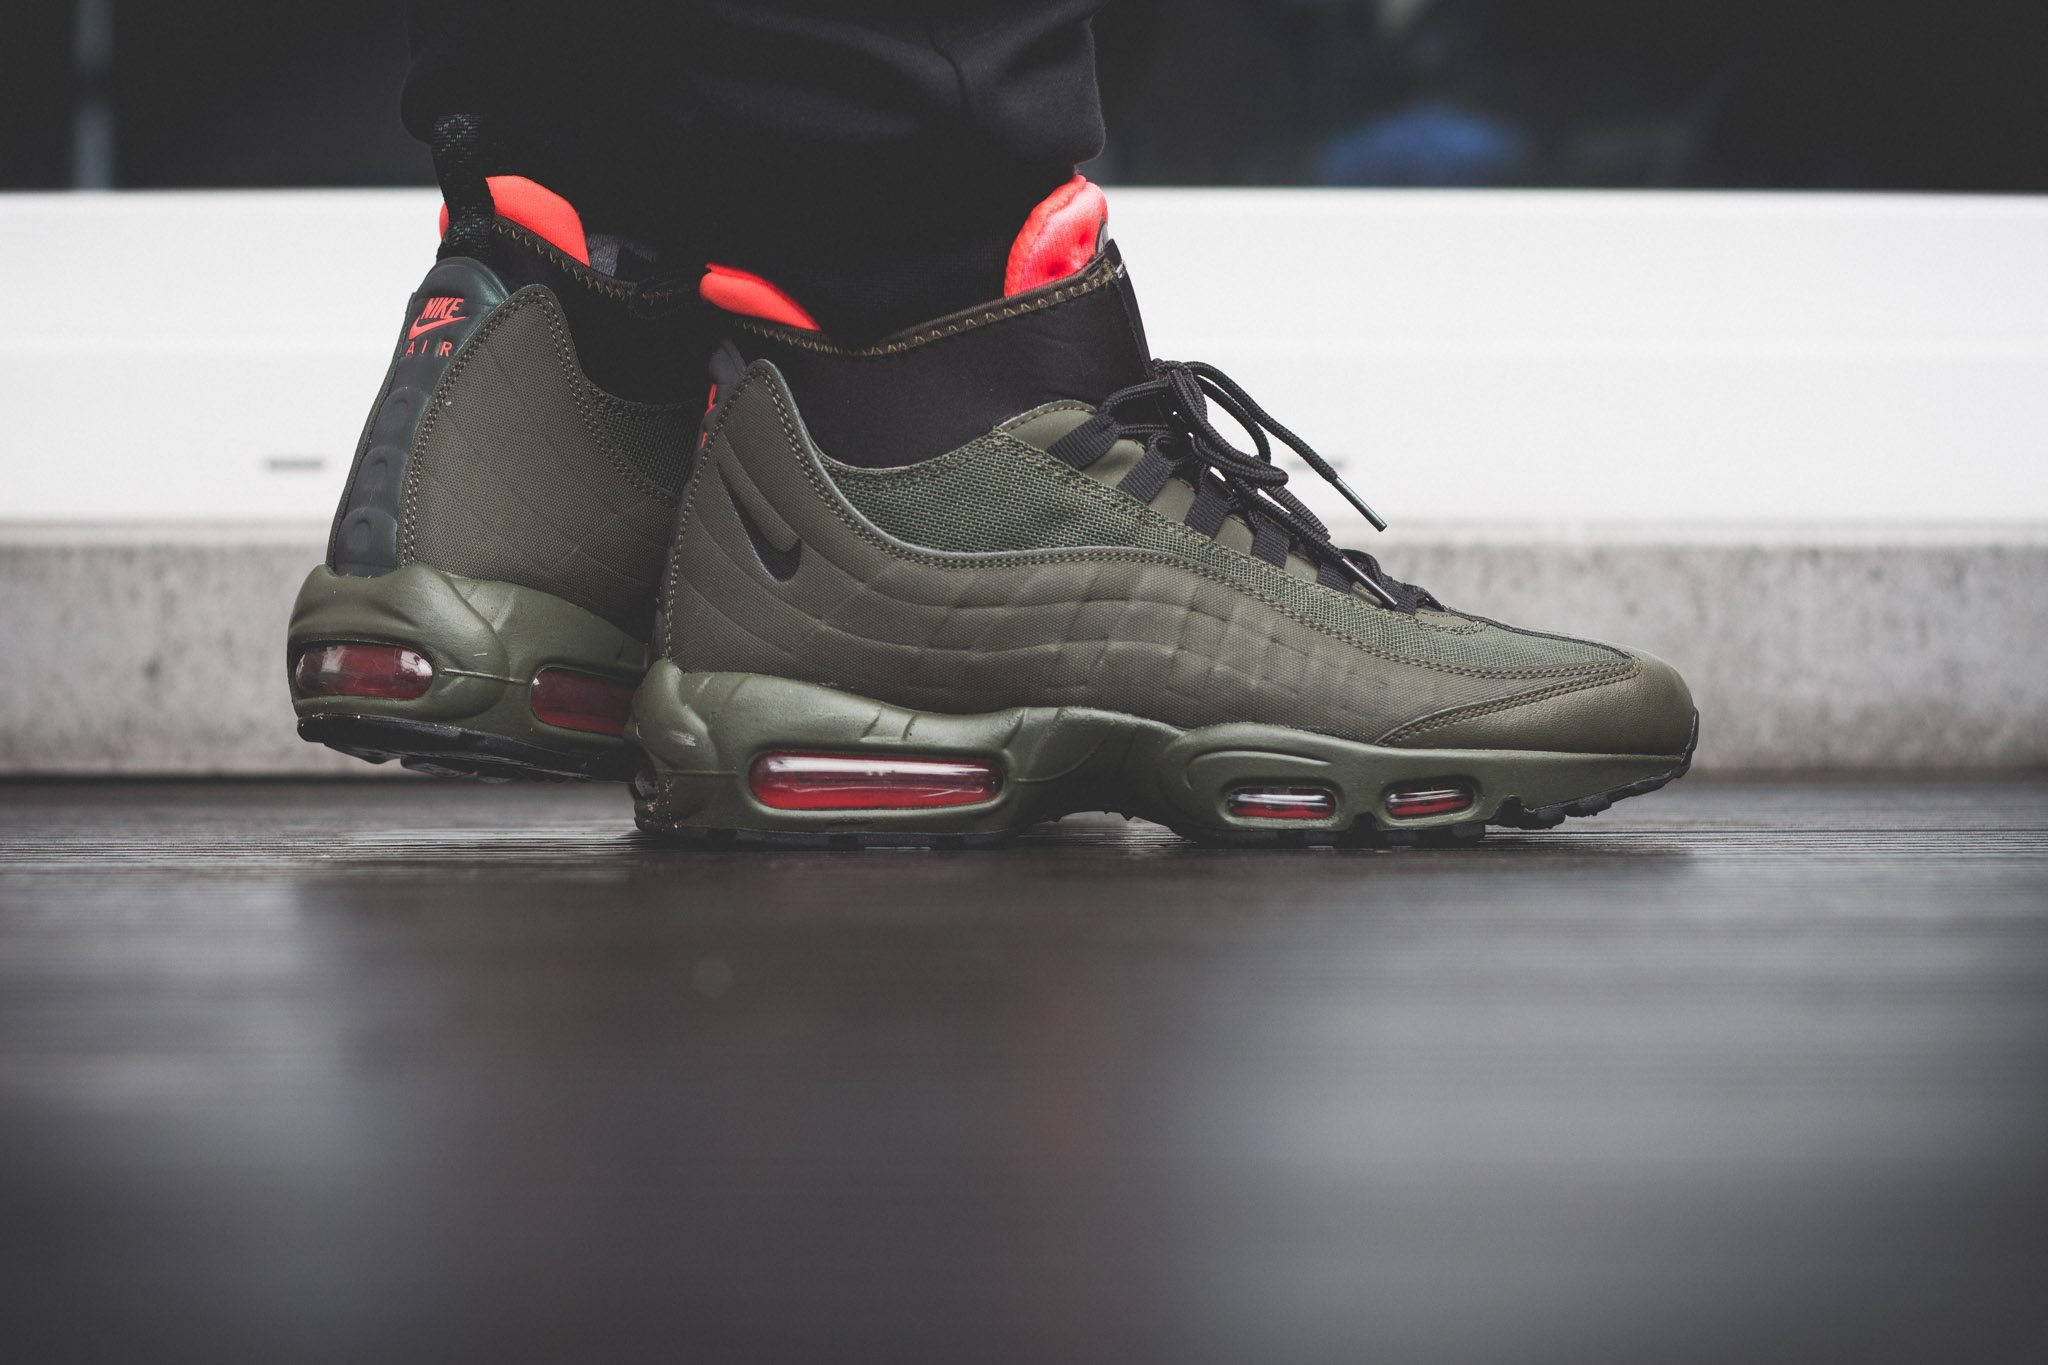 Nike Air Max 95 SneakerBoot 10